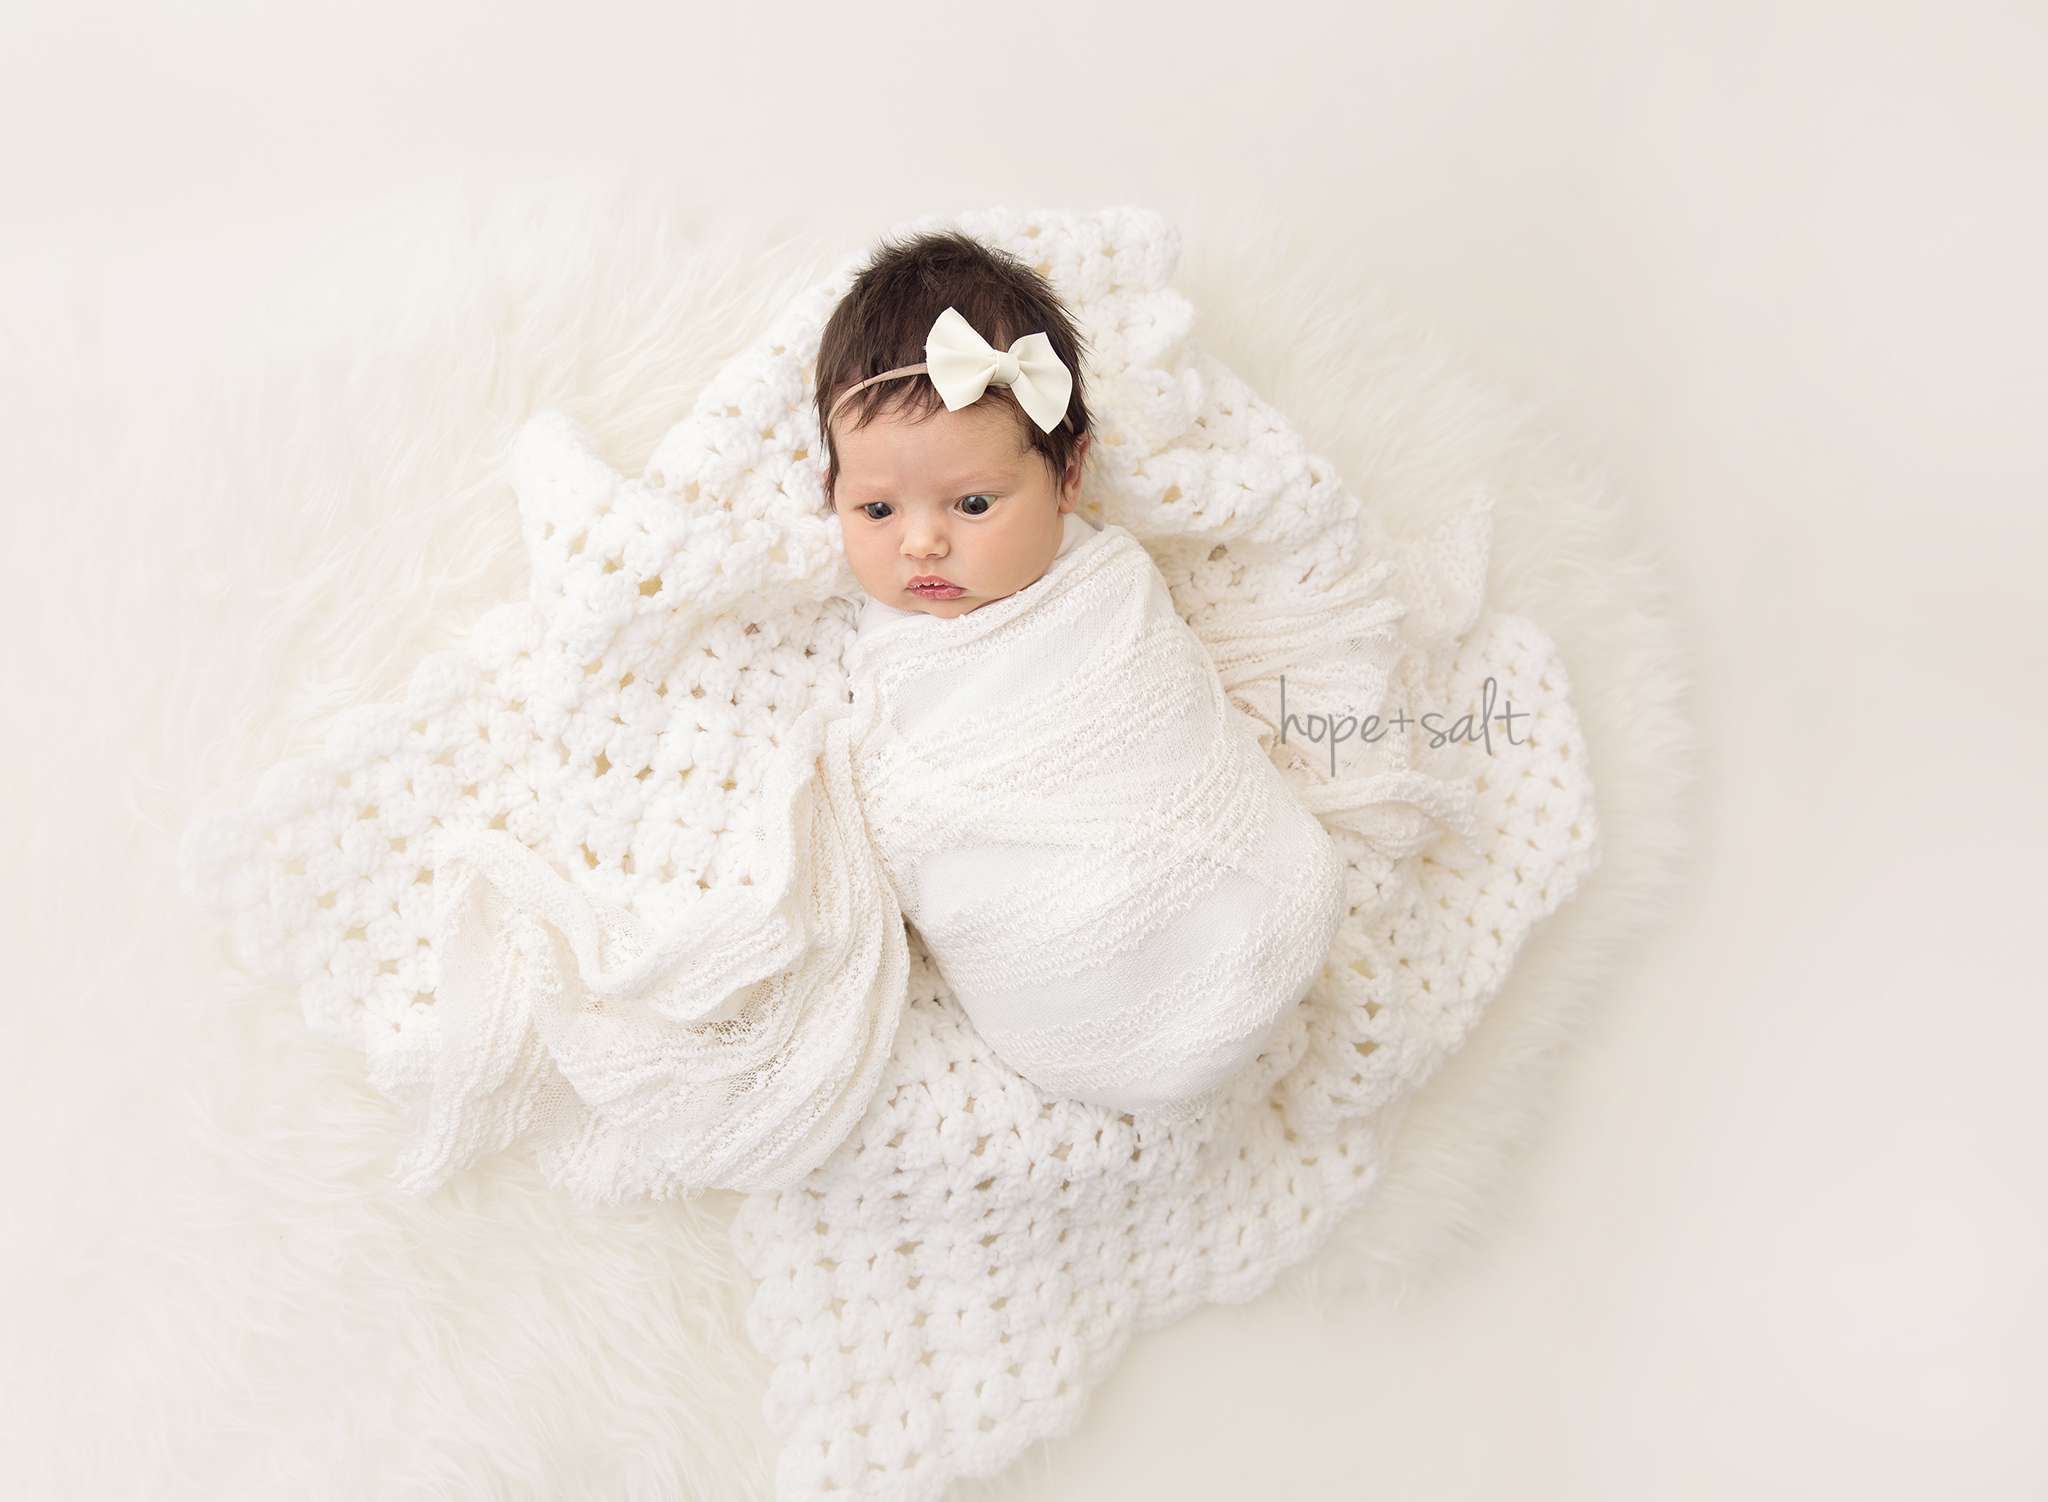 burlington newborn photographer - naturally posed studio session for baby girl Rosie and family